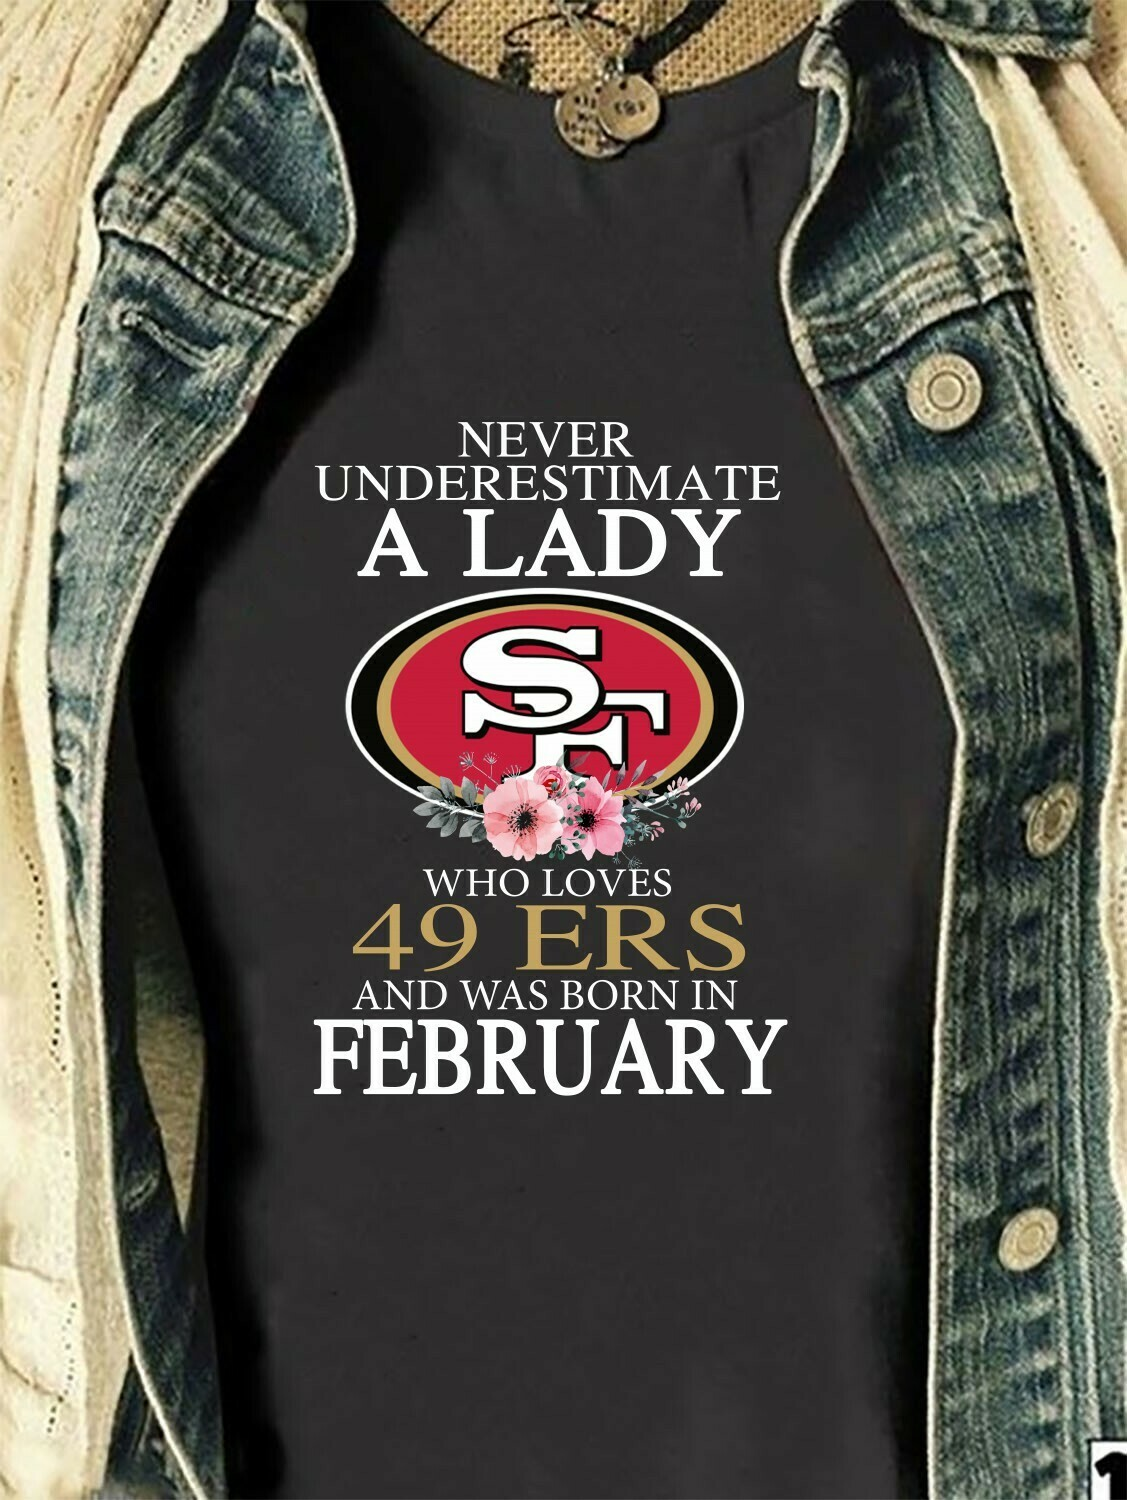 Never underestimate a lady who loves 49Ers and was born in February  T-Shirt Sweatshirt Hoodie Long Sleeve Tee Kids Youth Gifts Jolly Family Gifts